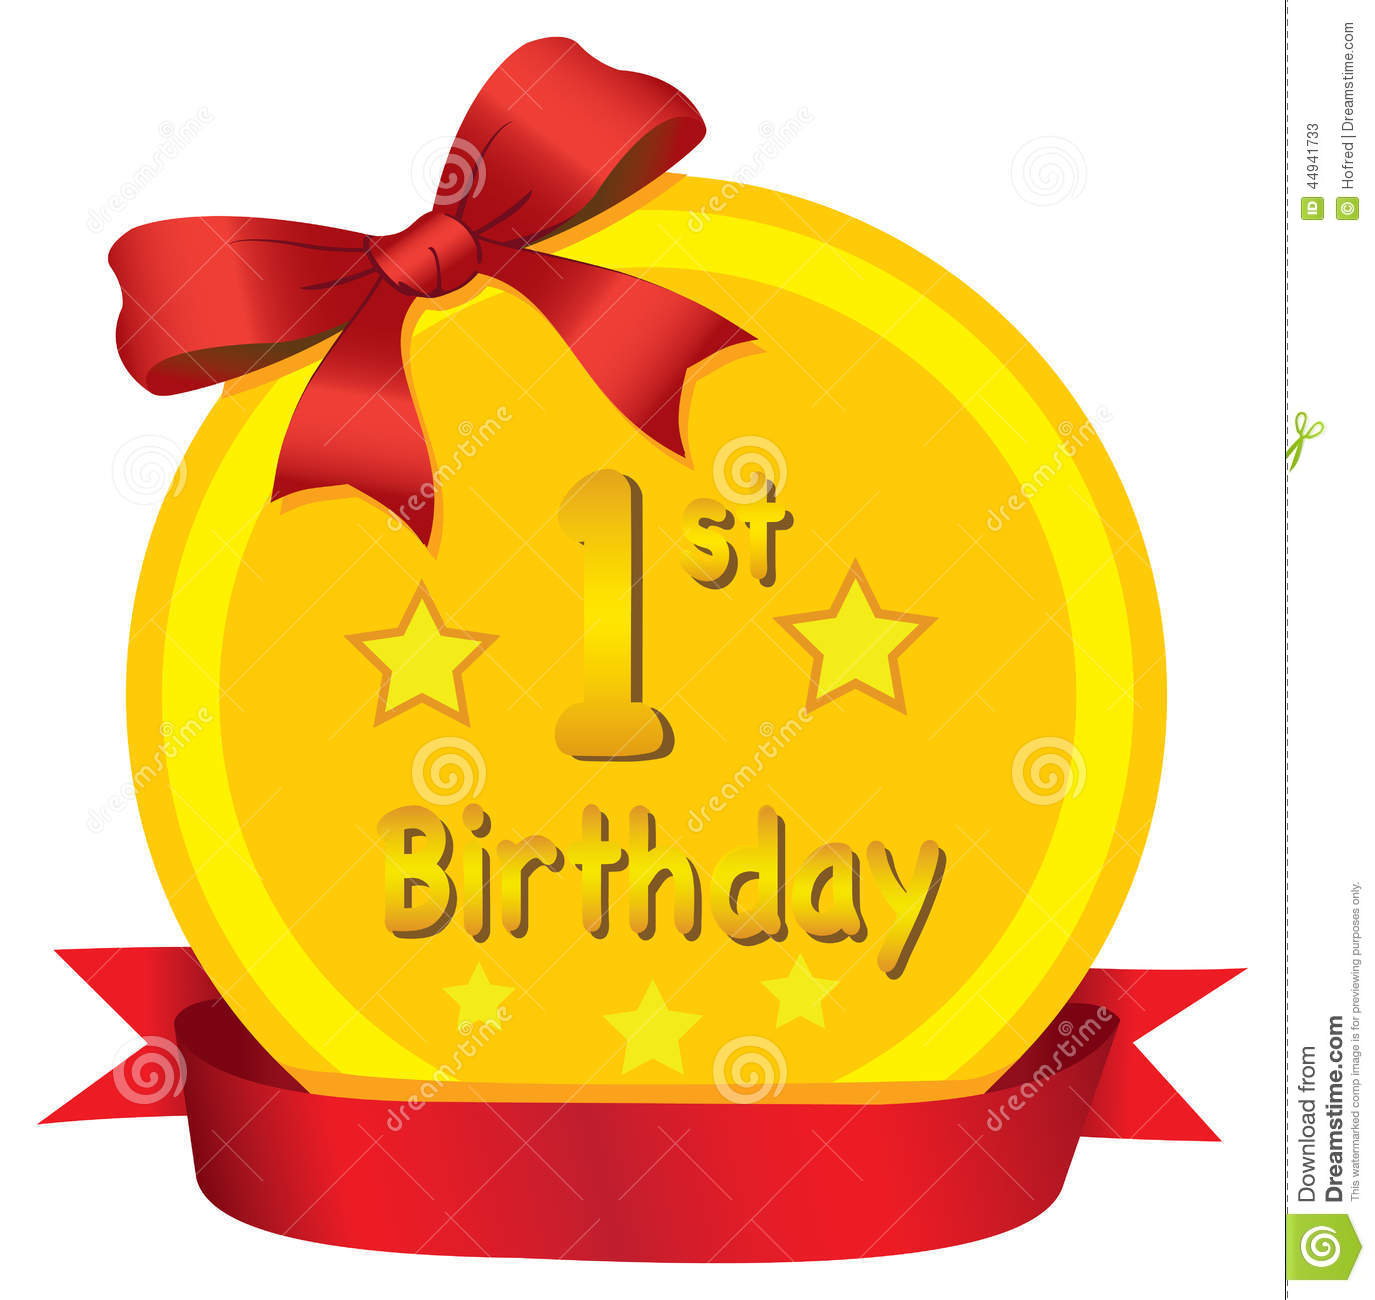 Baby 1st Birthday Gold Medal With Red Ribbon Vector